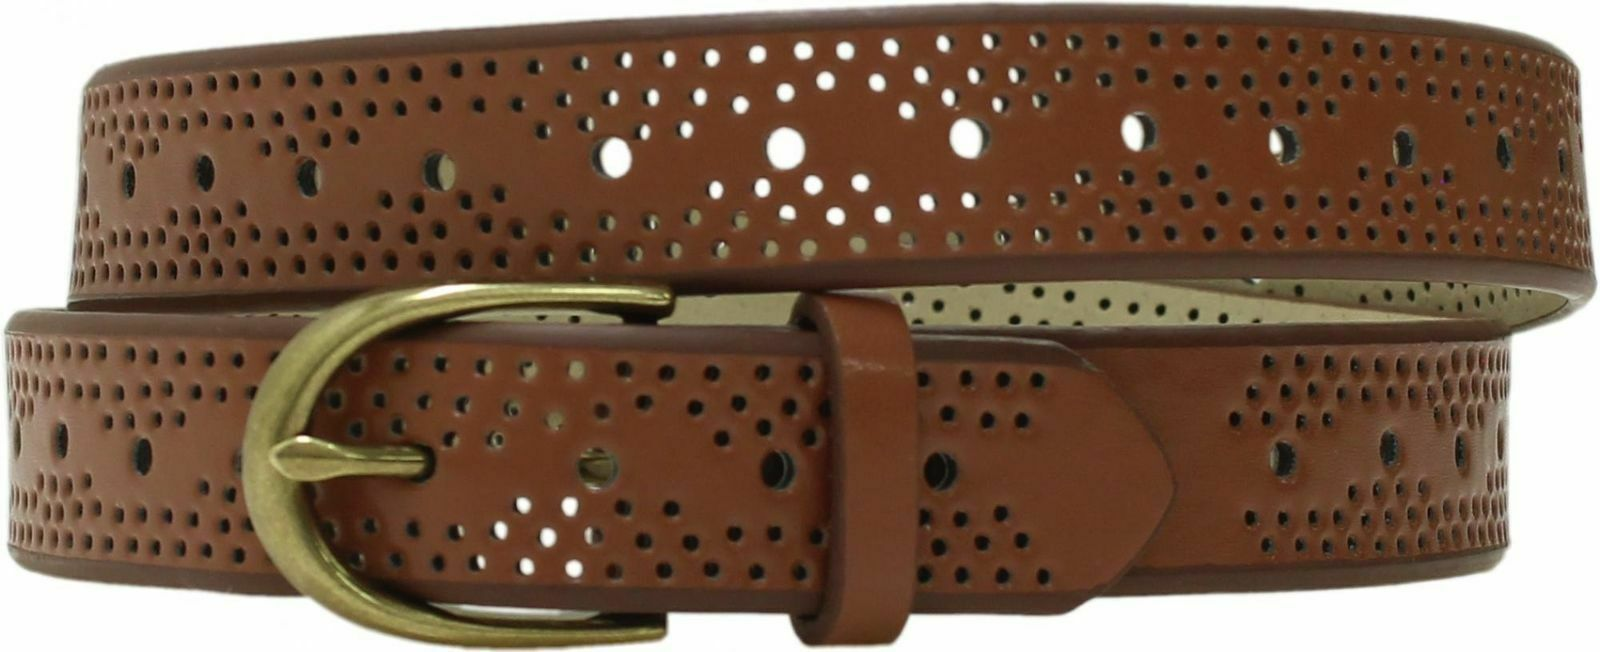 NEW* Mossimo Womens Narrow Perf Perforated Belt